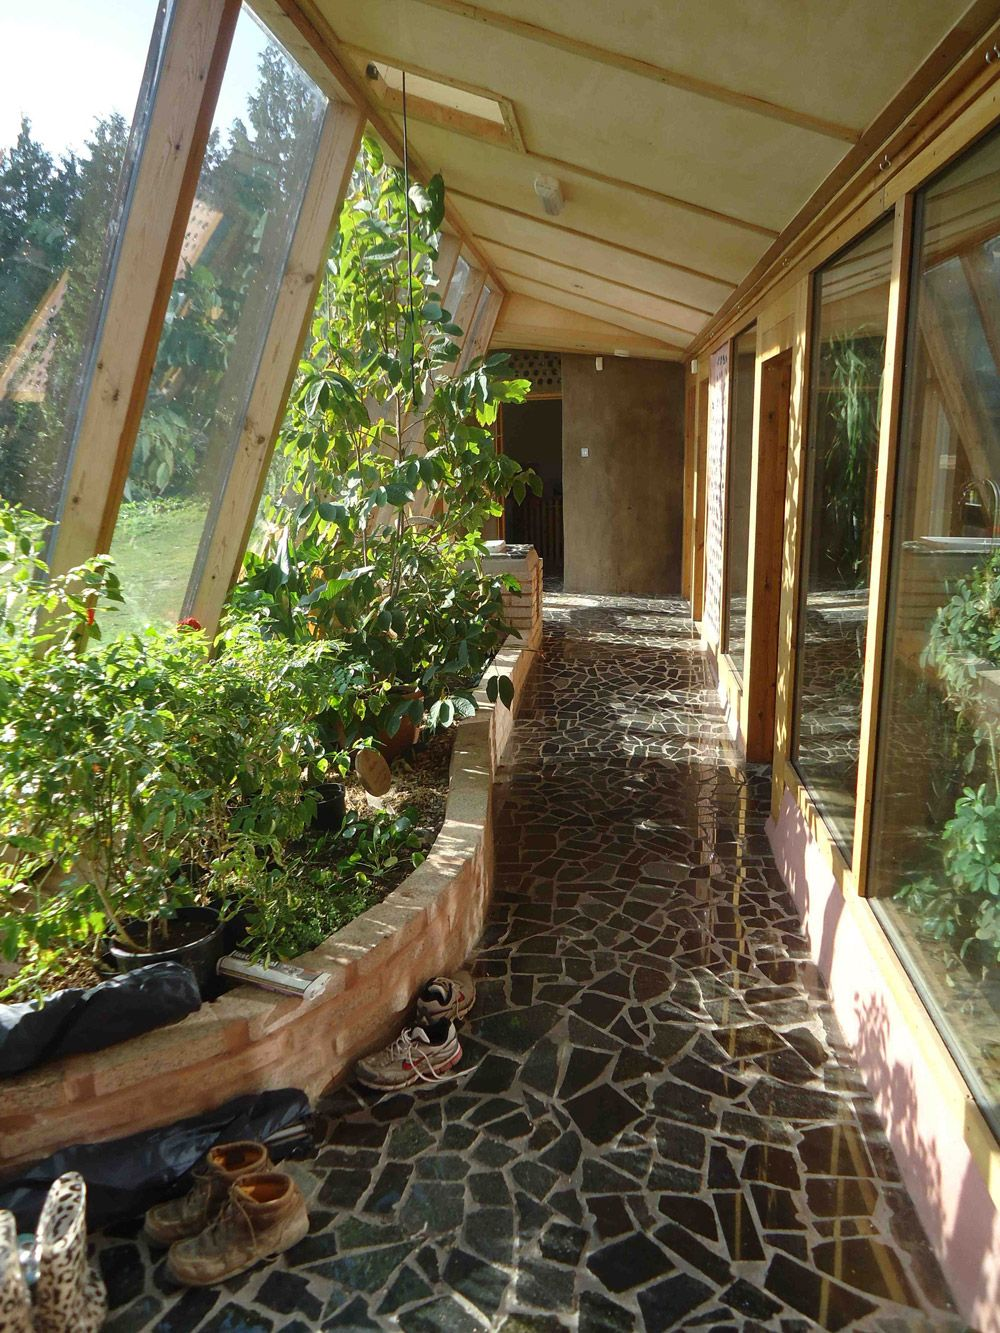 combo hallway and greenhouse growing your own veggies and fruit stays around 70 degrees year. Black Bedroom Furniture Sets. Home Design Ideas